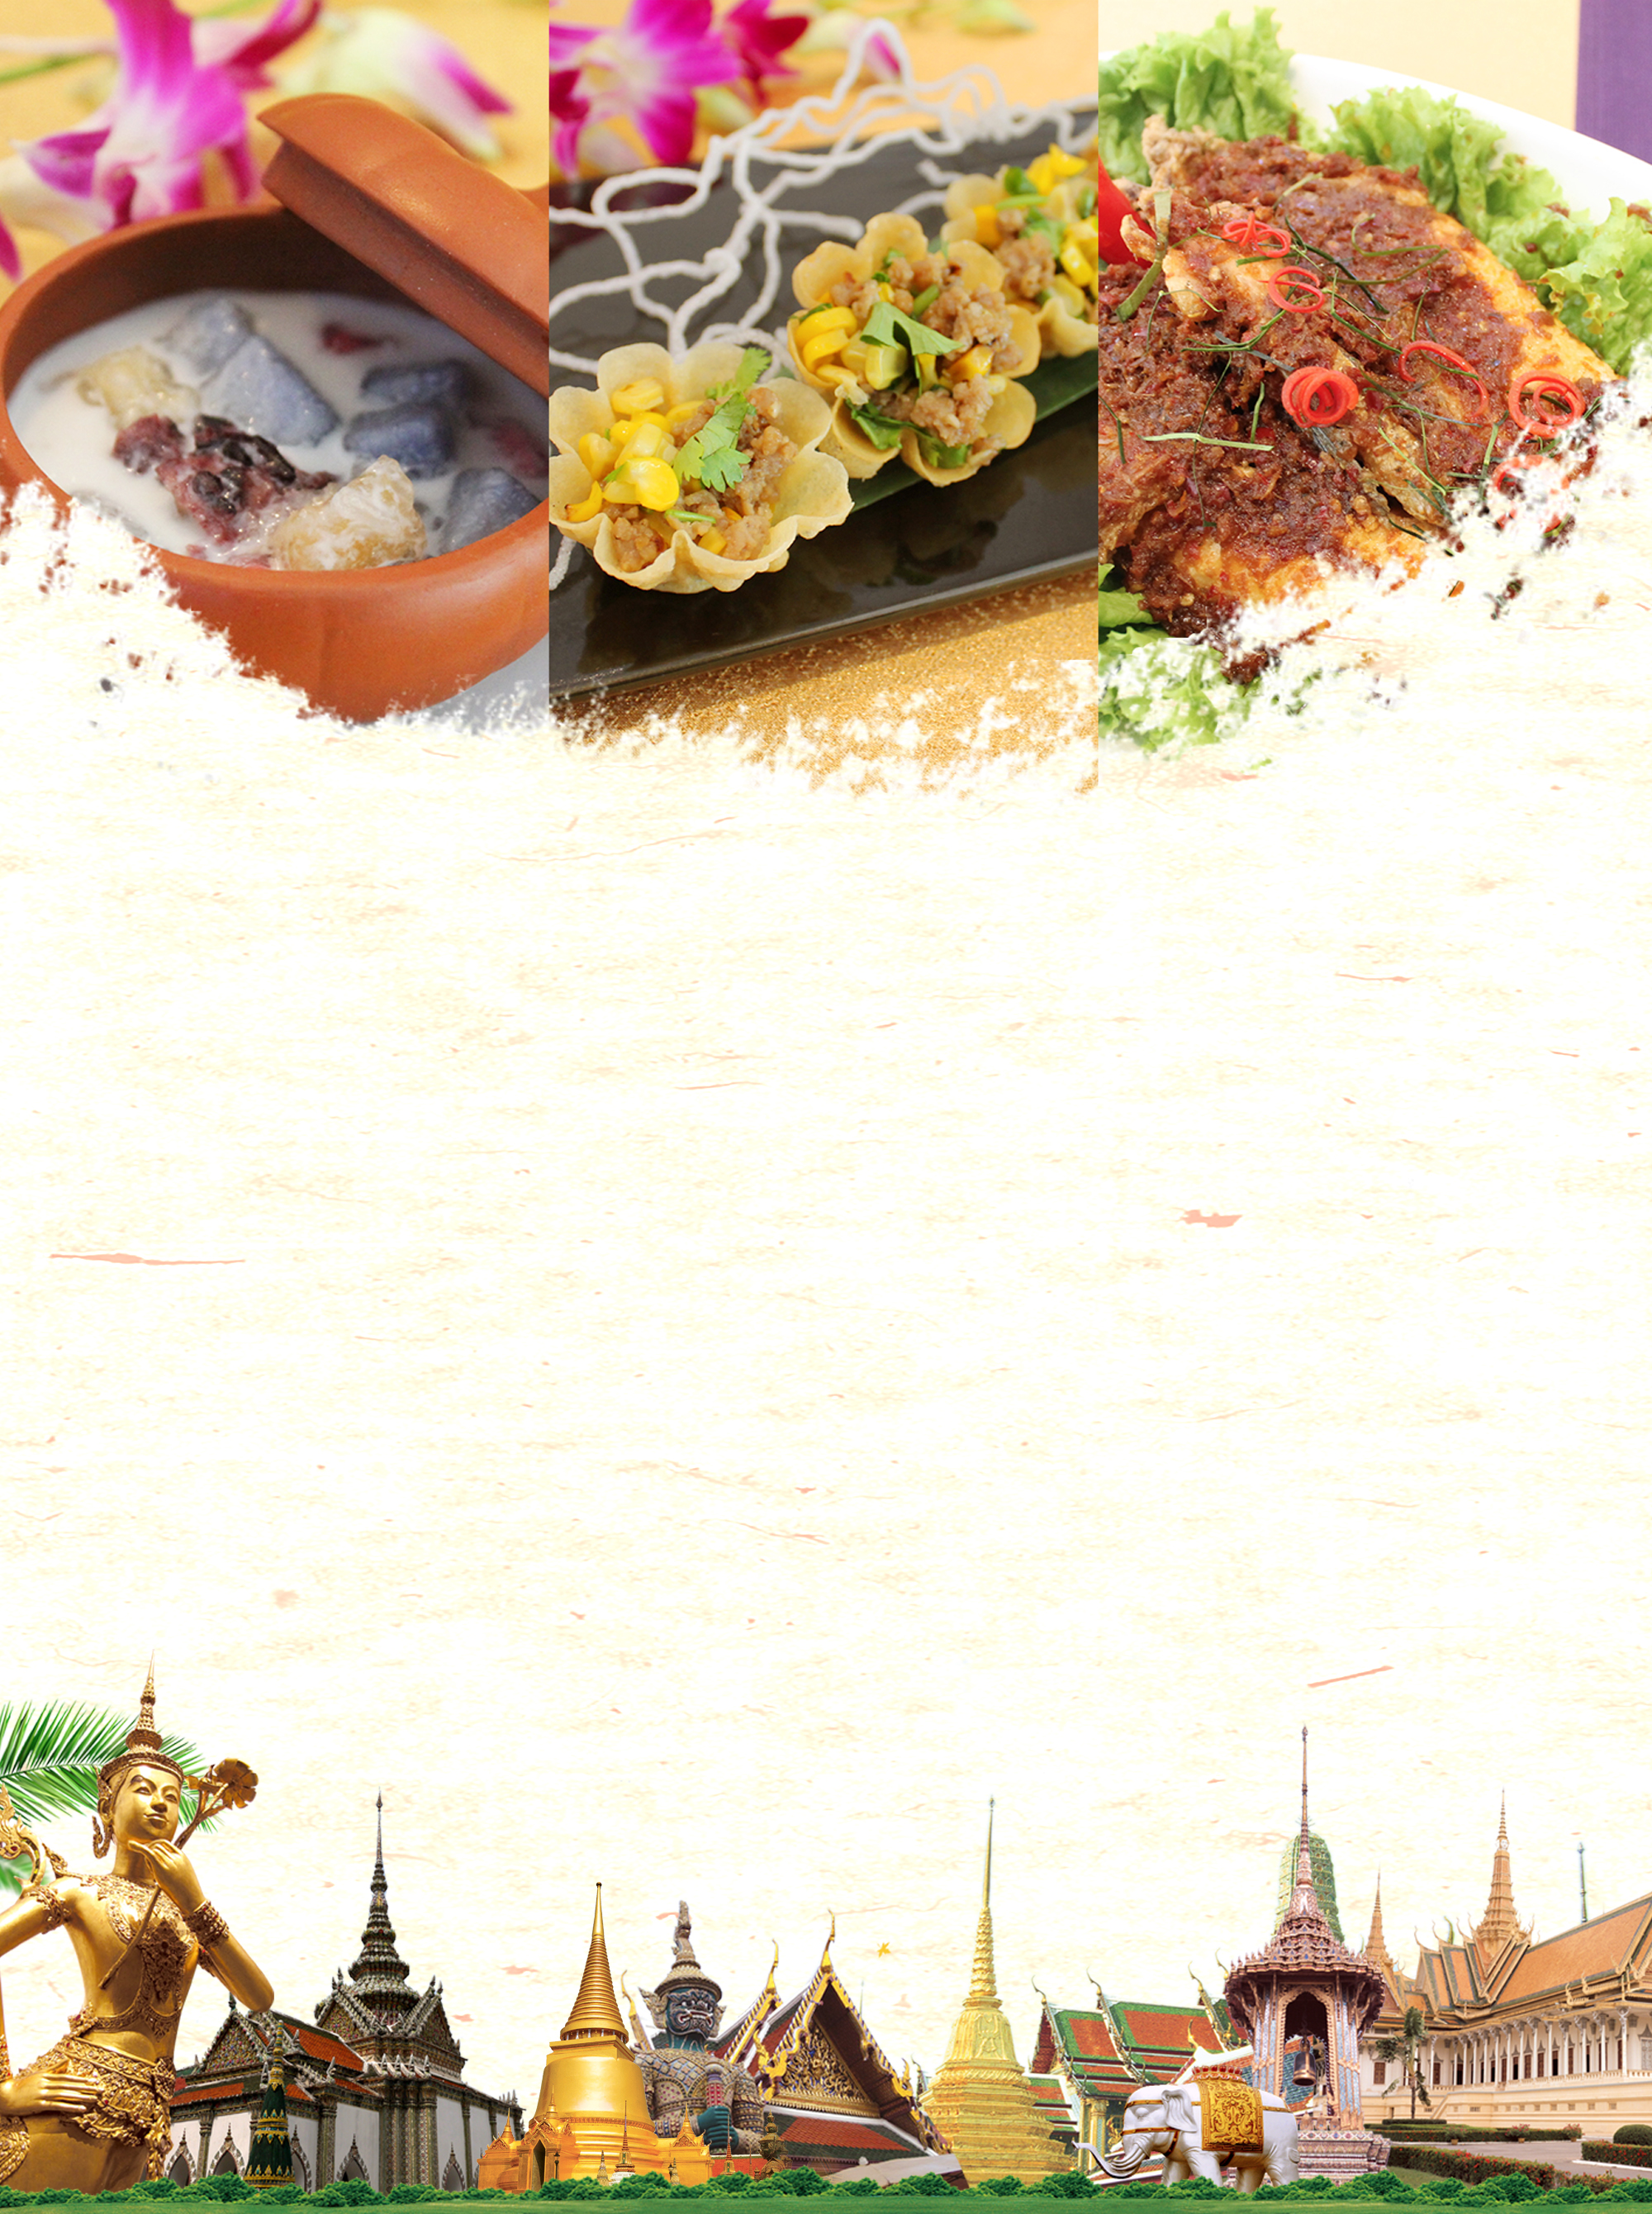 thailand gourmet tour poster background material  thailand